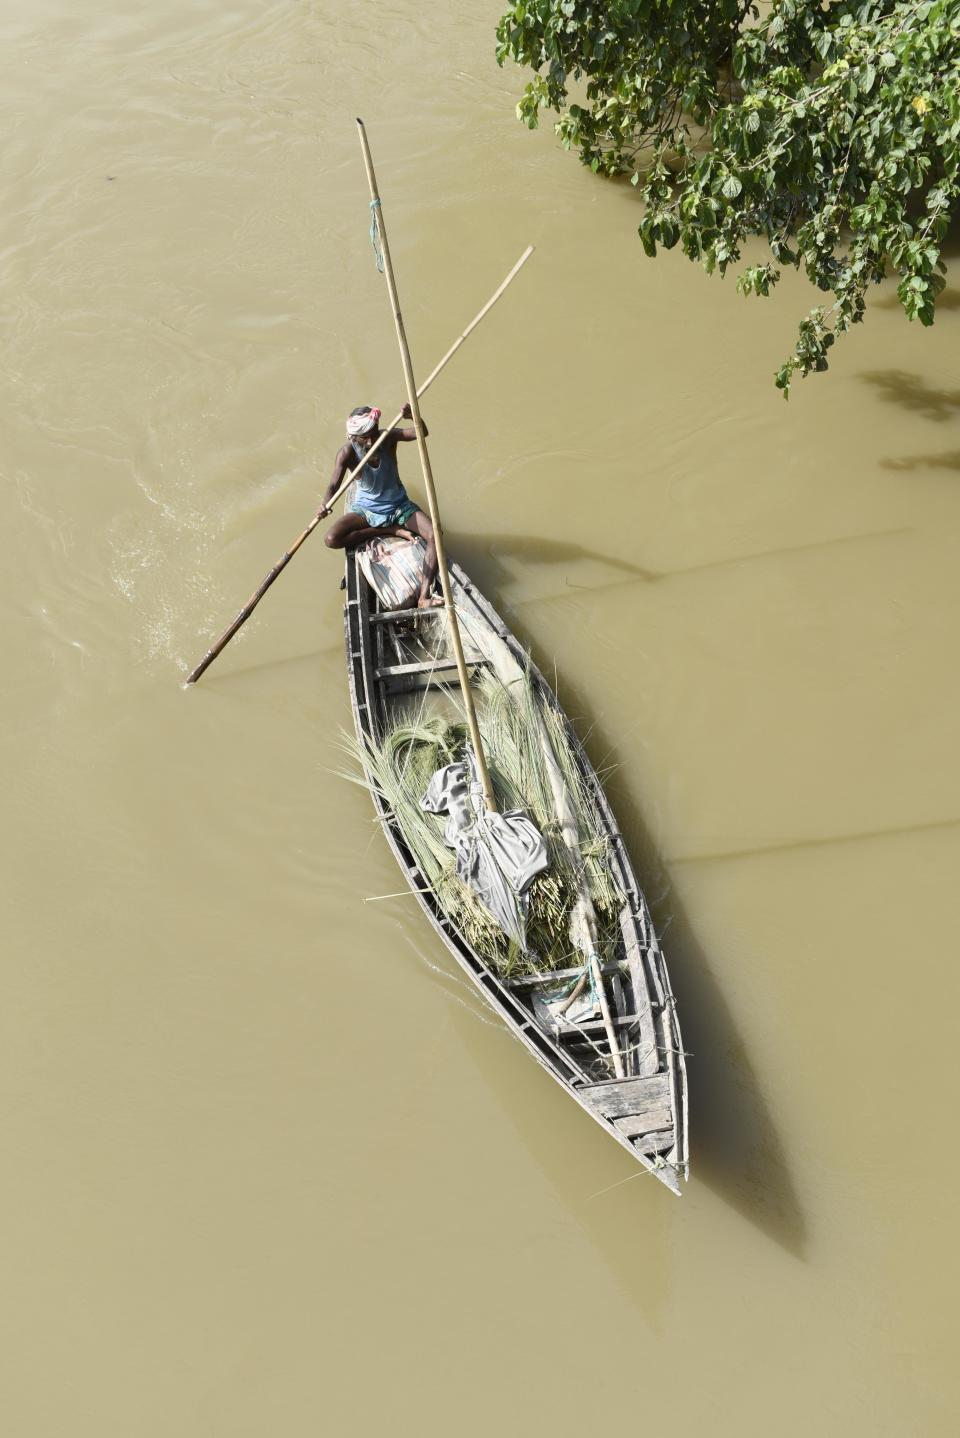 Villager uses a boat to move across a flooded area in a flood effected village in Morigaon district of Assam in India on Friday, 17 July 2020. (Photo by David Talukdar/NurPhoto via Getty Images)